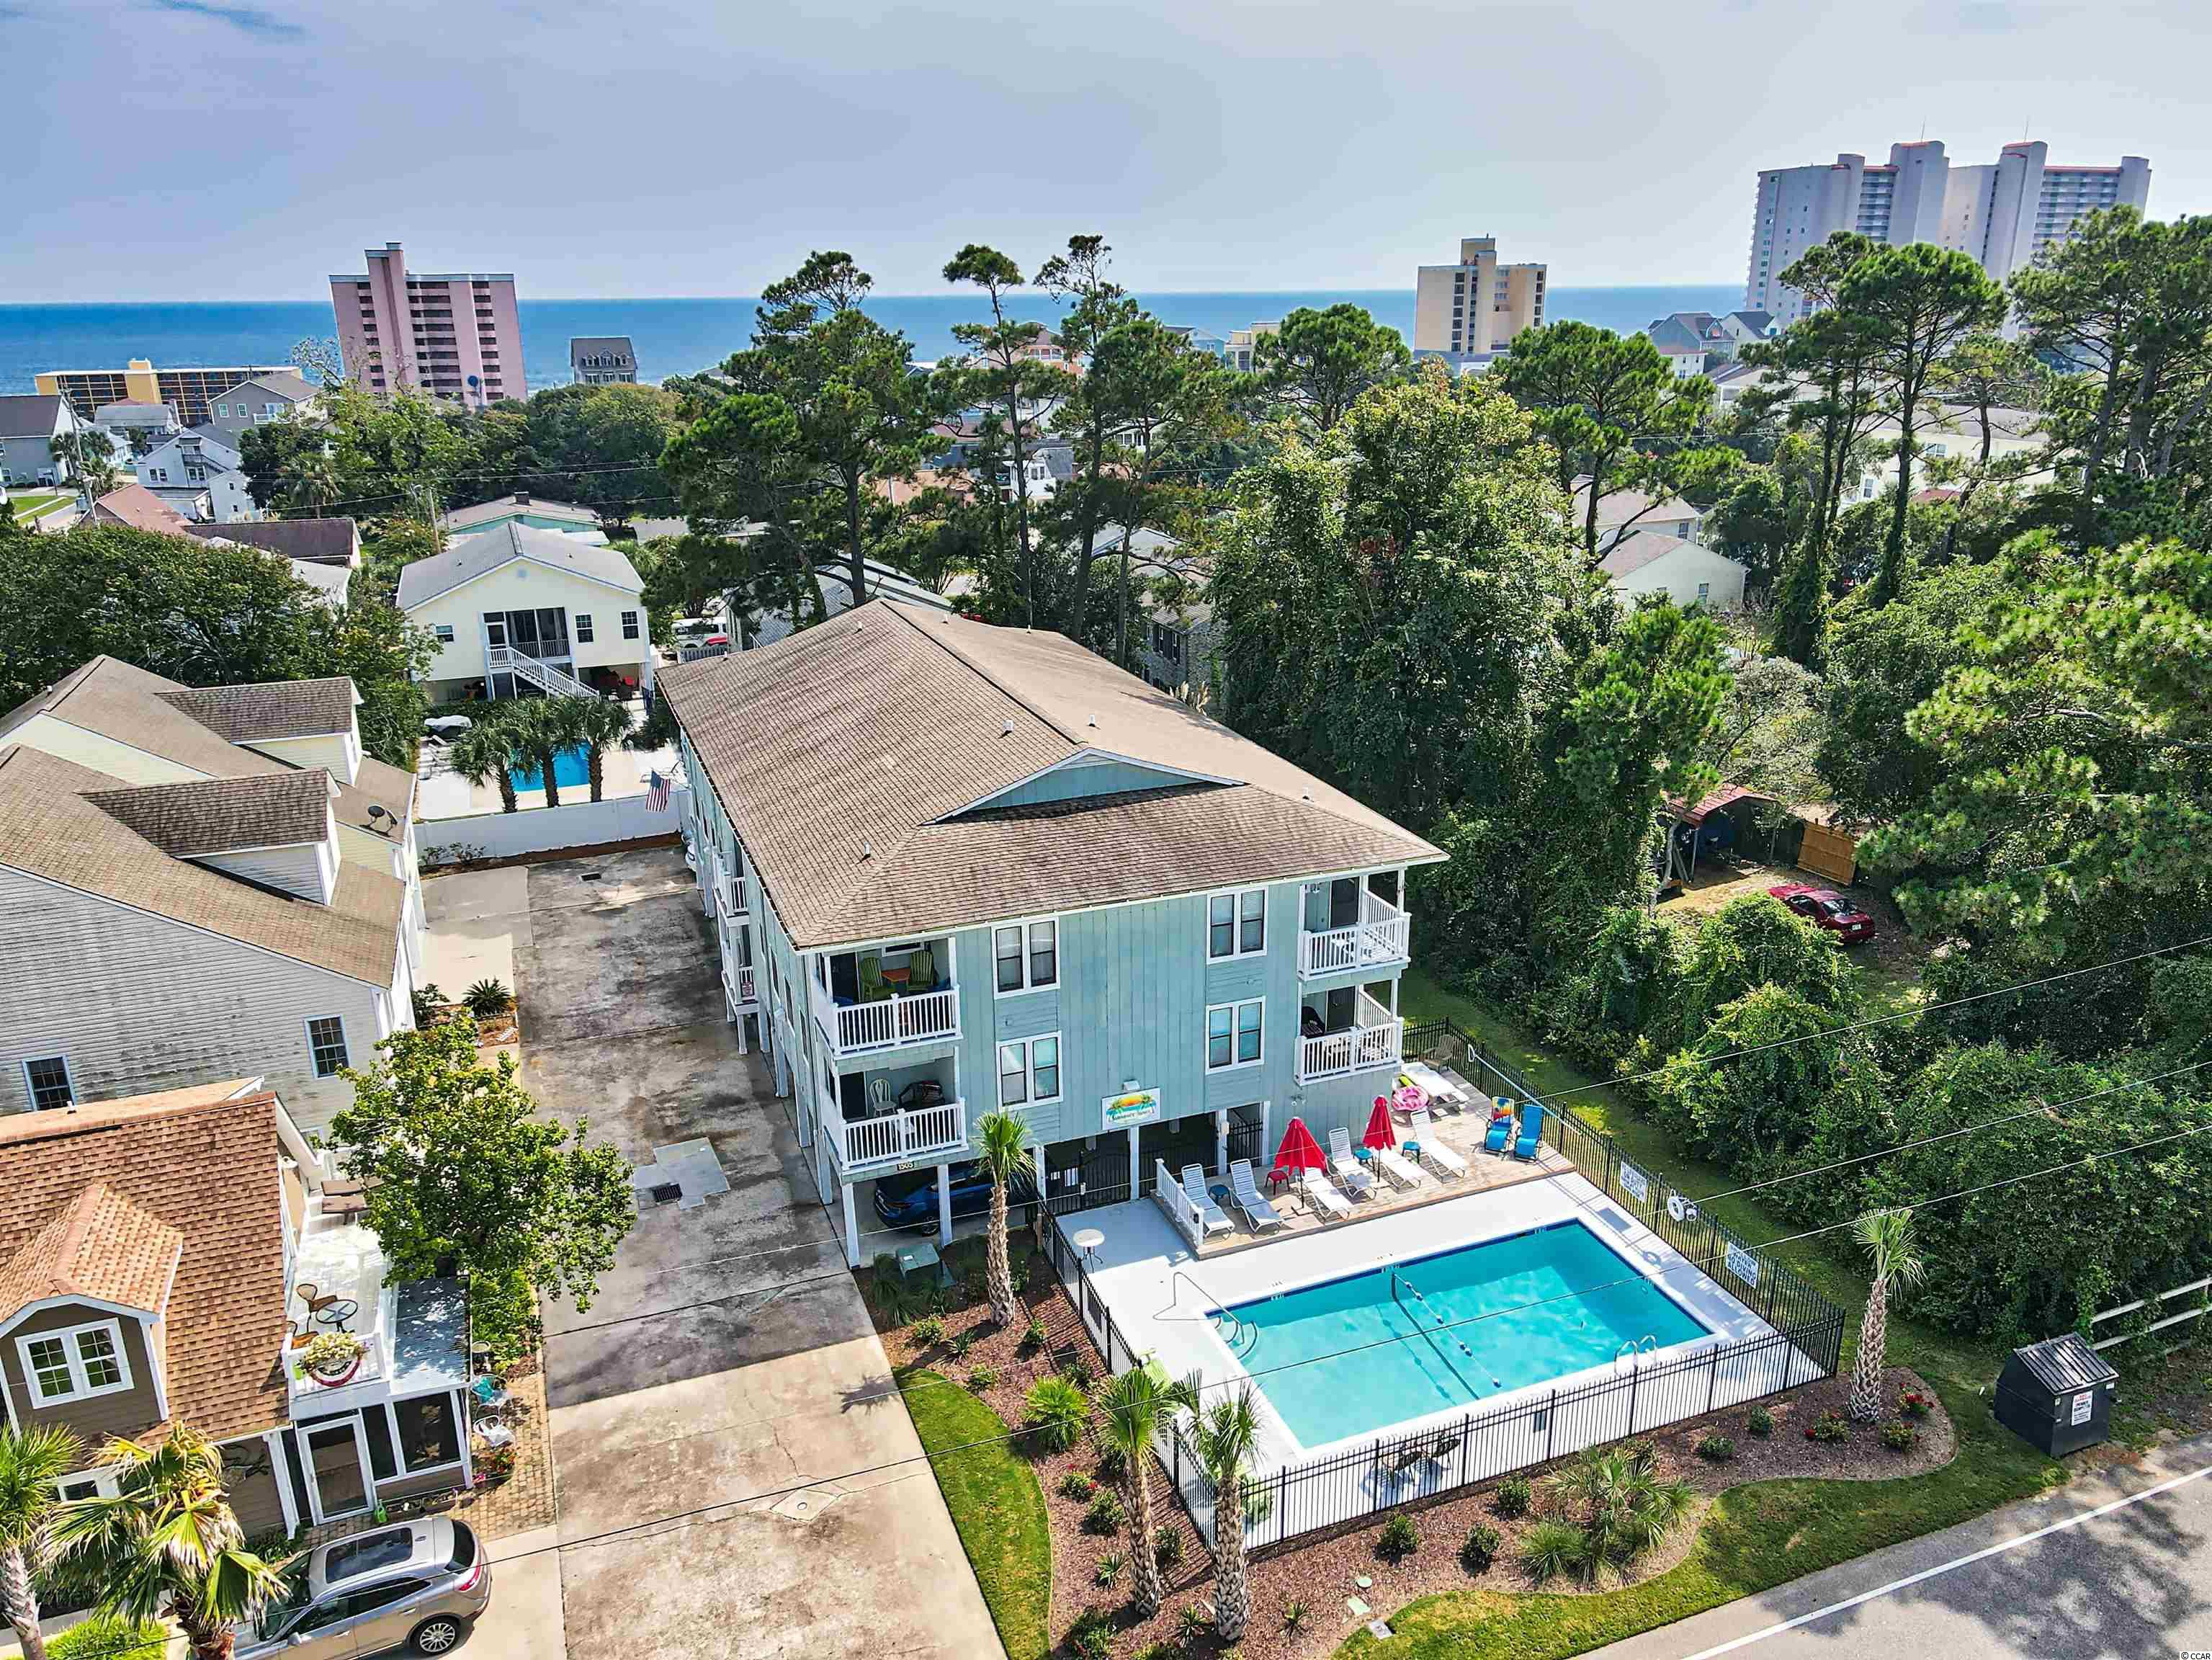 OFFER DEADLINE IS 5PM ON SATURDAY 09/11/2021, PLEASE SUBMIT YOUR FINAL AND BEST. Two Blocks from the beach in North Myrtle Beach, move in ready! This condo will charm you from the very first sight. Immaculate condition, fully furnished and tastefully decorated, all you need is a tooth brush! Condo is freshly painted , has new carpet in both bedrooms, pergo flooring  in the living and dinning rooms, new kitchen cabinets, counter top and sink, new dishwasher, new washer and dryer. Both of the bathrooms have new tile floor, new vanities and hardware. Also this condo offers new HVAC 2018.    Convenient under building parking spot is big enough for 2 cars and a golf cart. And as a nice bonus there is a storage closet downstairs that will fit all of your beach gear and tools.   Run, don't walk! This is a rare opportunity to own your piece of paradise! OPEN HOUSES will be held on Friday 09/10/2021 3pm-5pm and Saturday 09/11/2021 1pm-3pm.